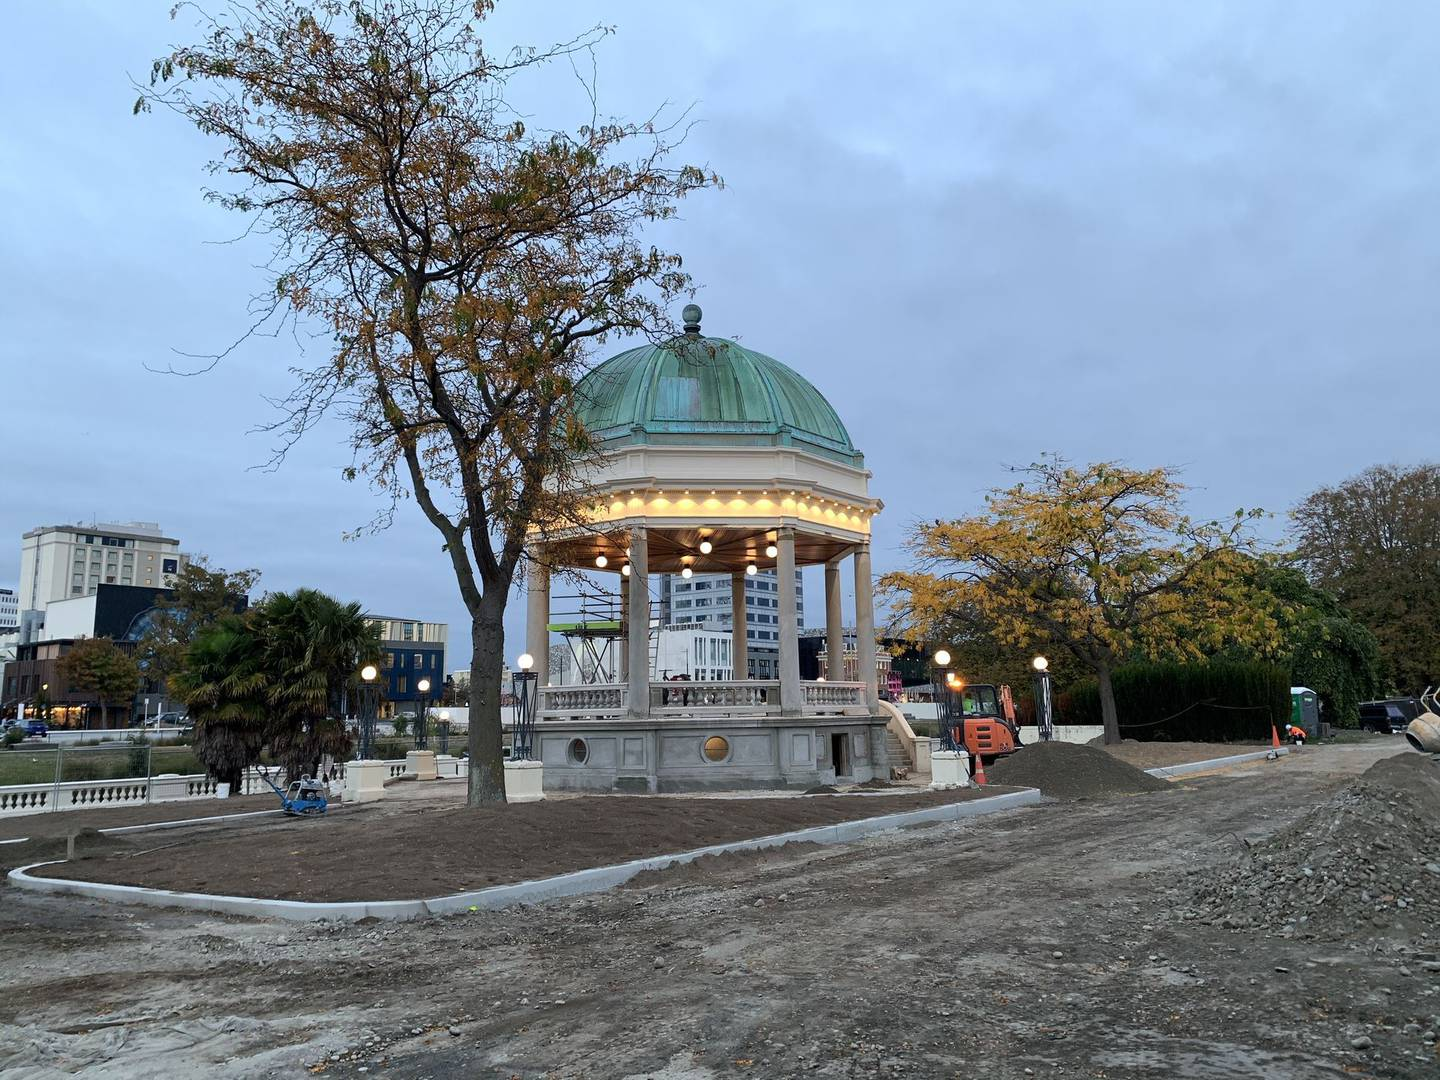 Christchurch City Council manager capital delivery community Darren Moses said the rotunda is...